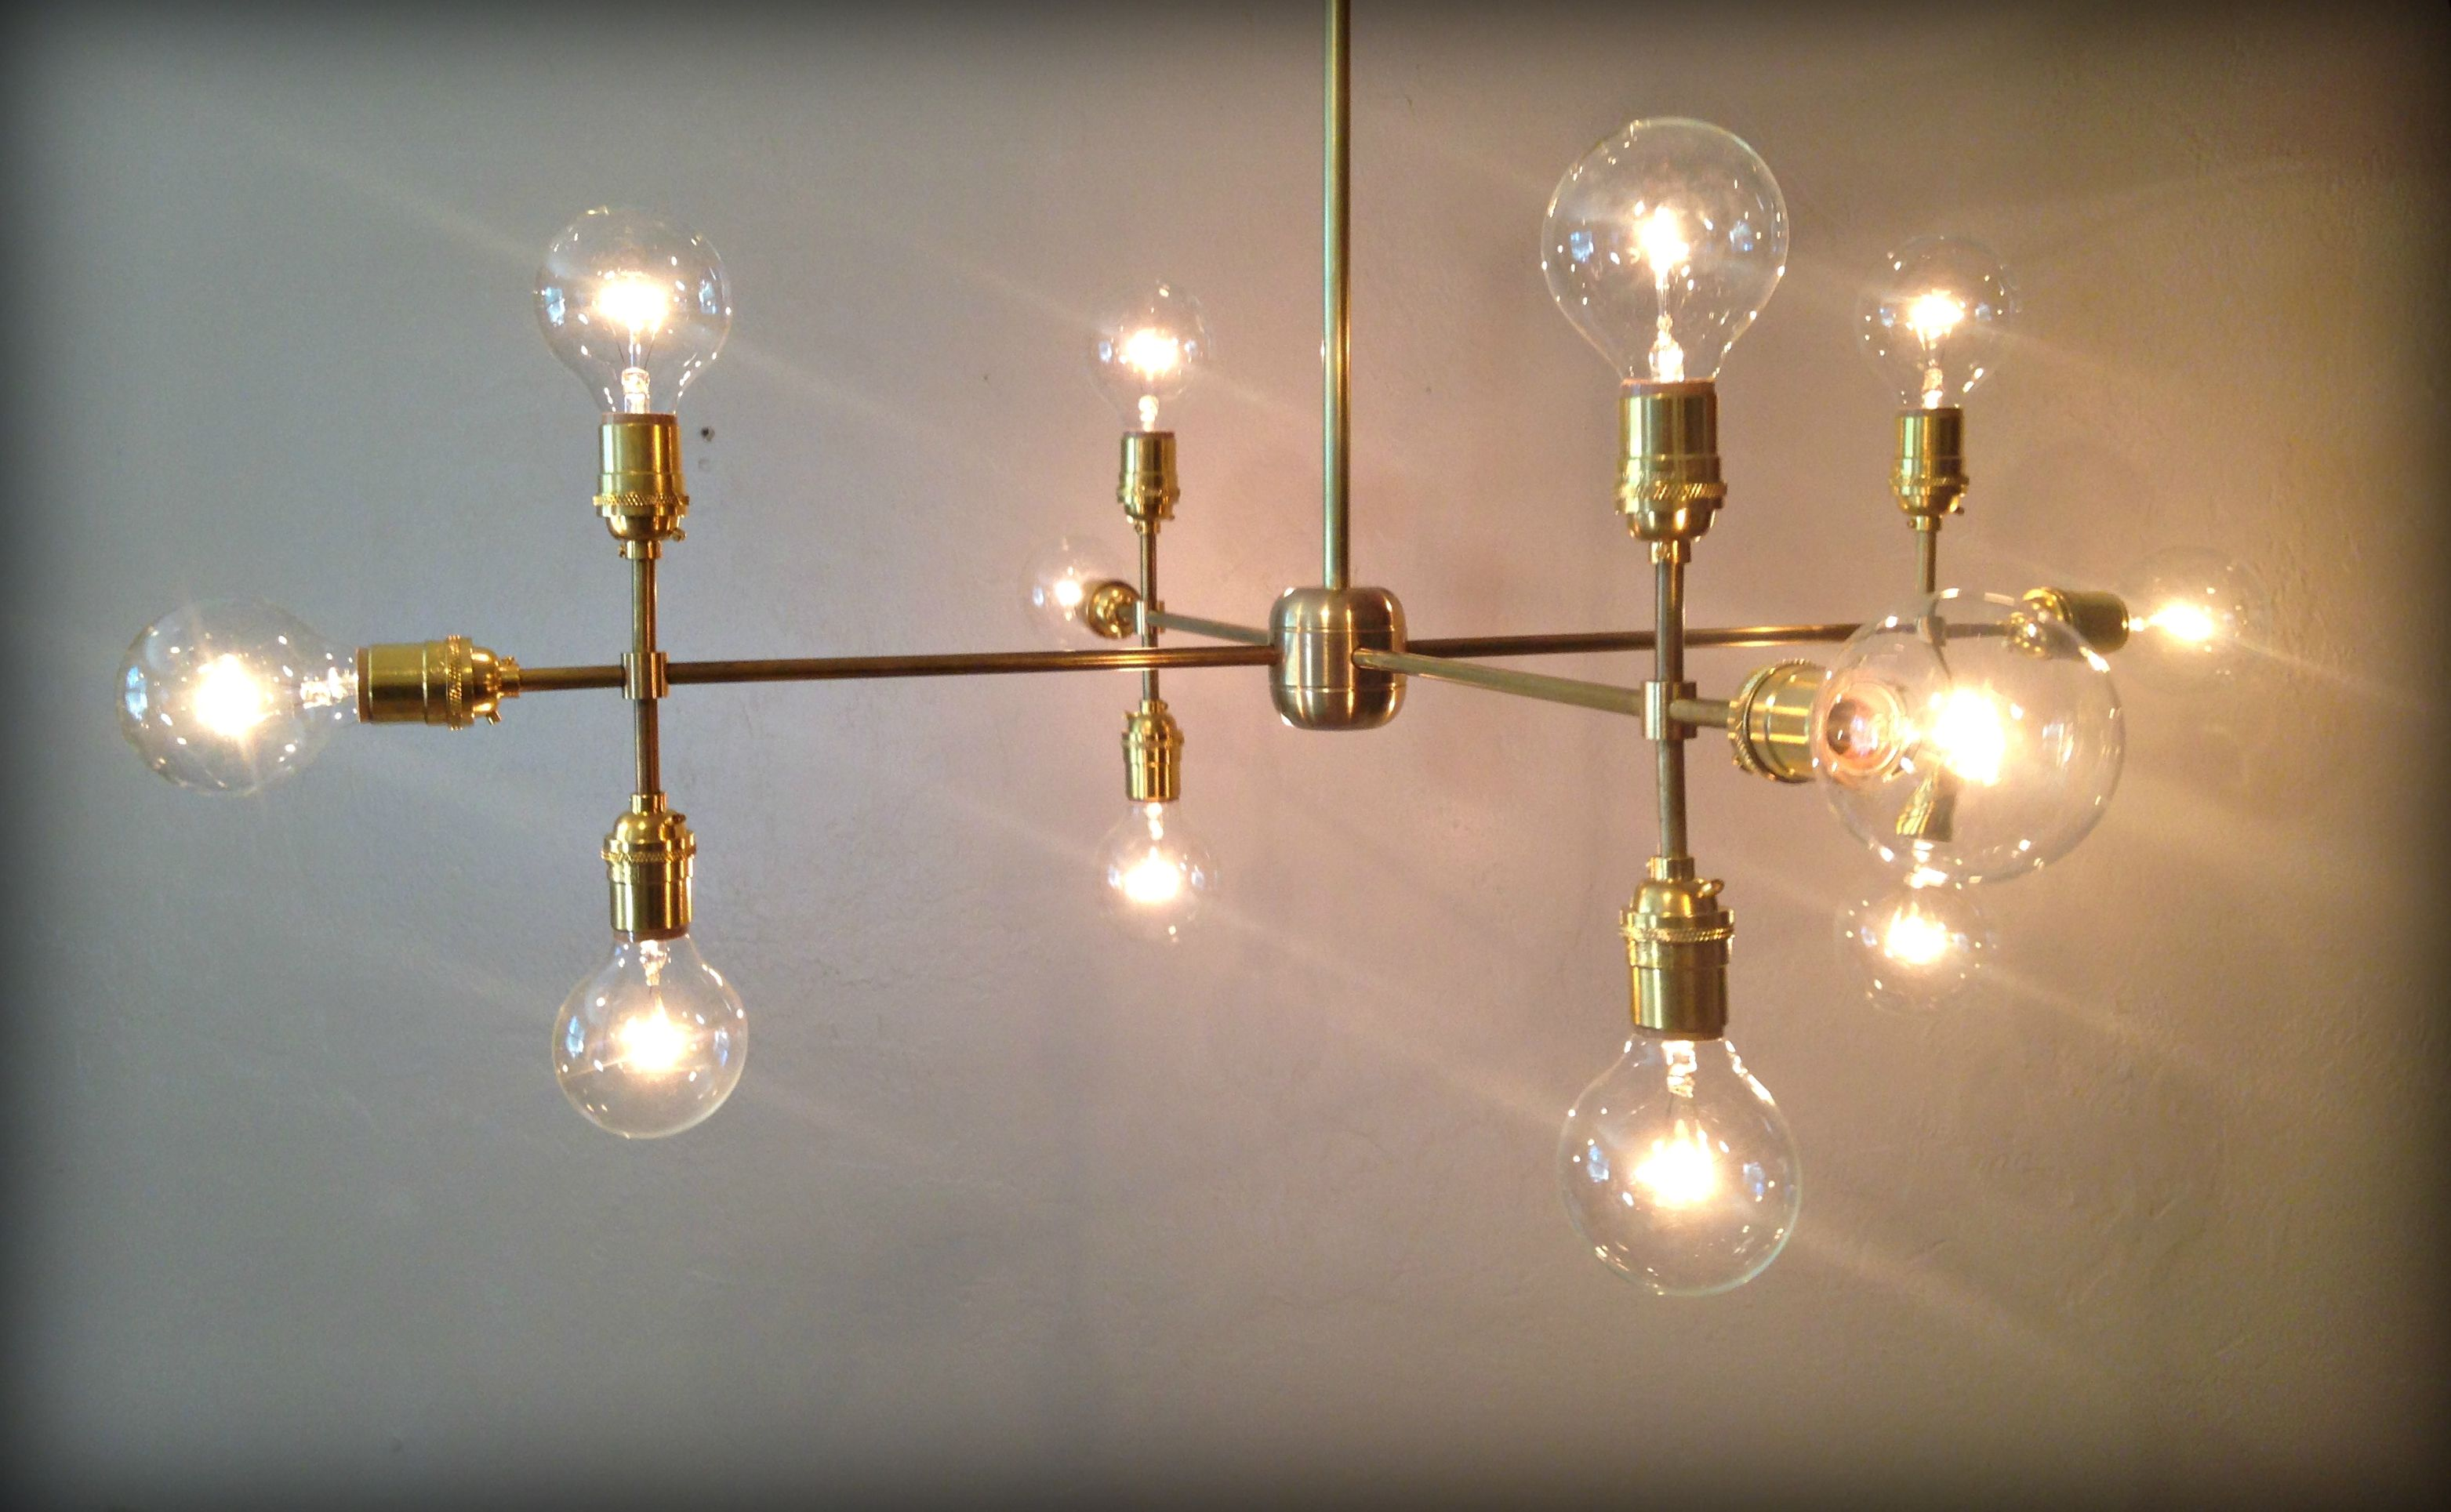 Handmade Modern Contemporary Light Sculpture - Multiple Light Edison ...